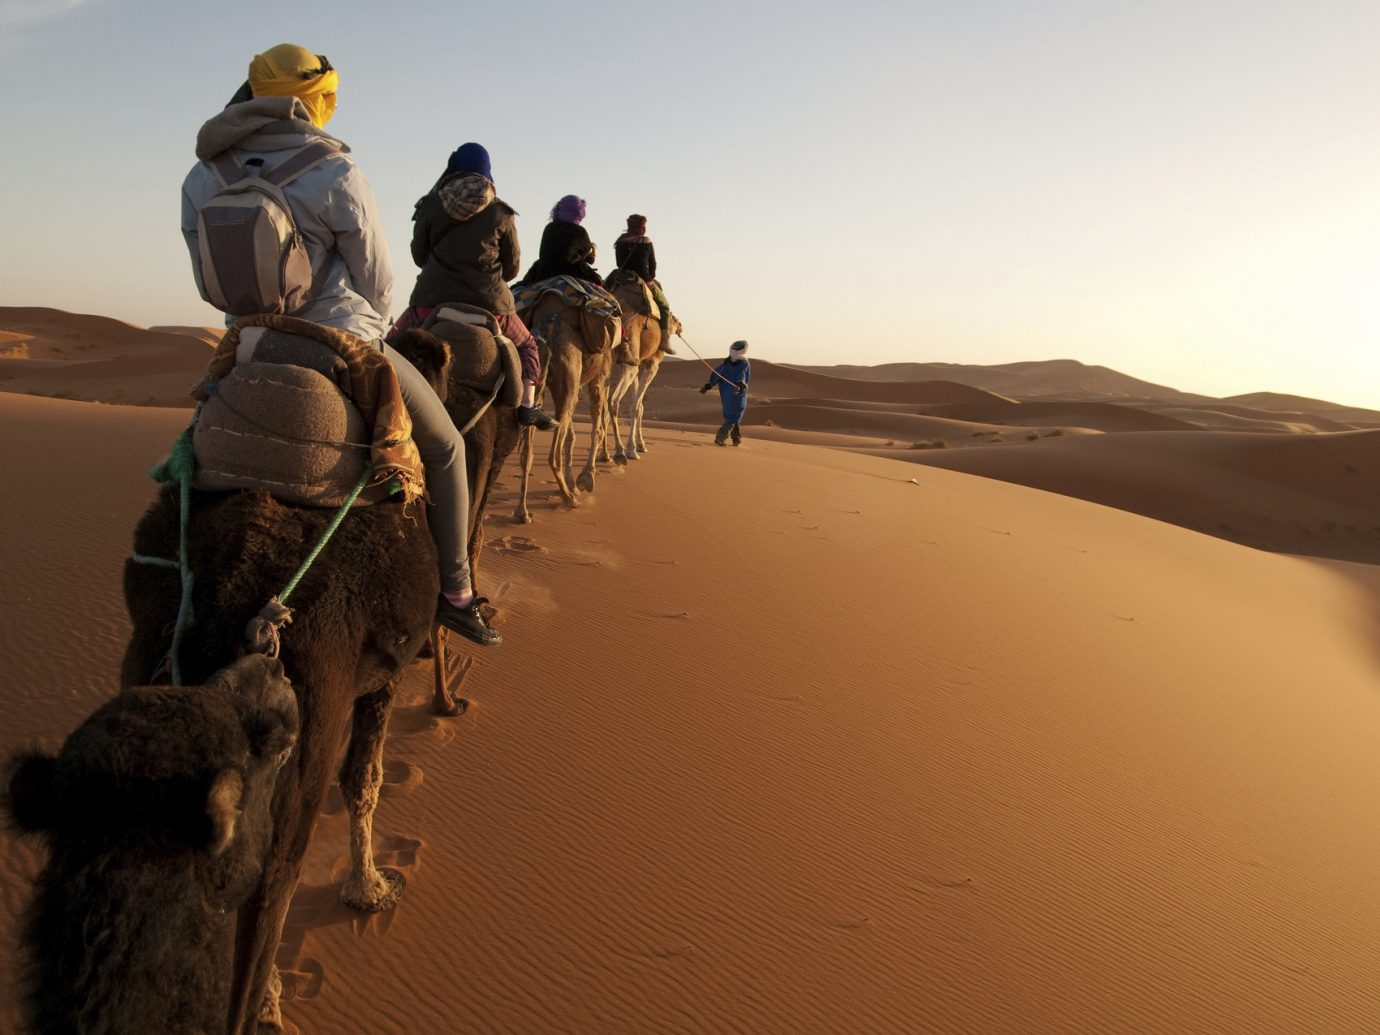 Trip Ideas sky outdoor sahara natural environment landform erg Camel Desert geographical feature riding aeolian landform landscape sand wadi camel like mammal Nature camel racing people arabian camel